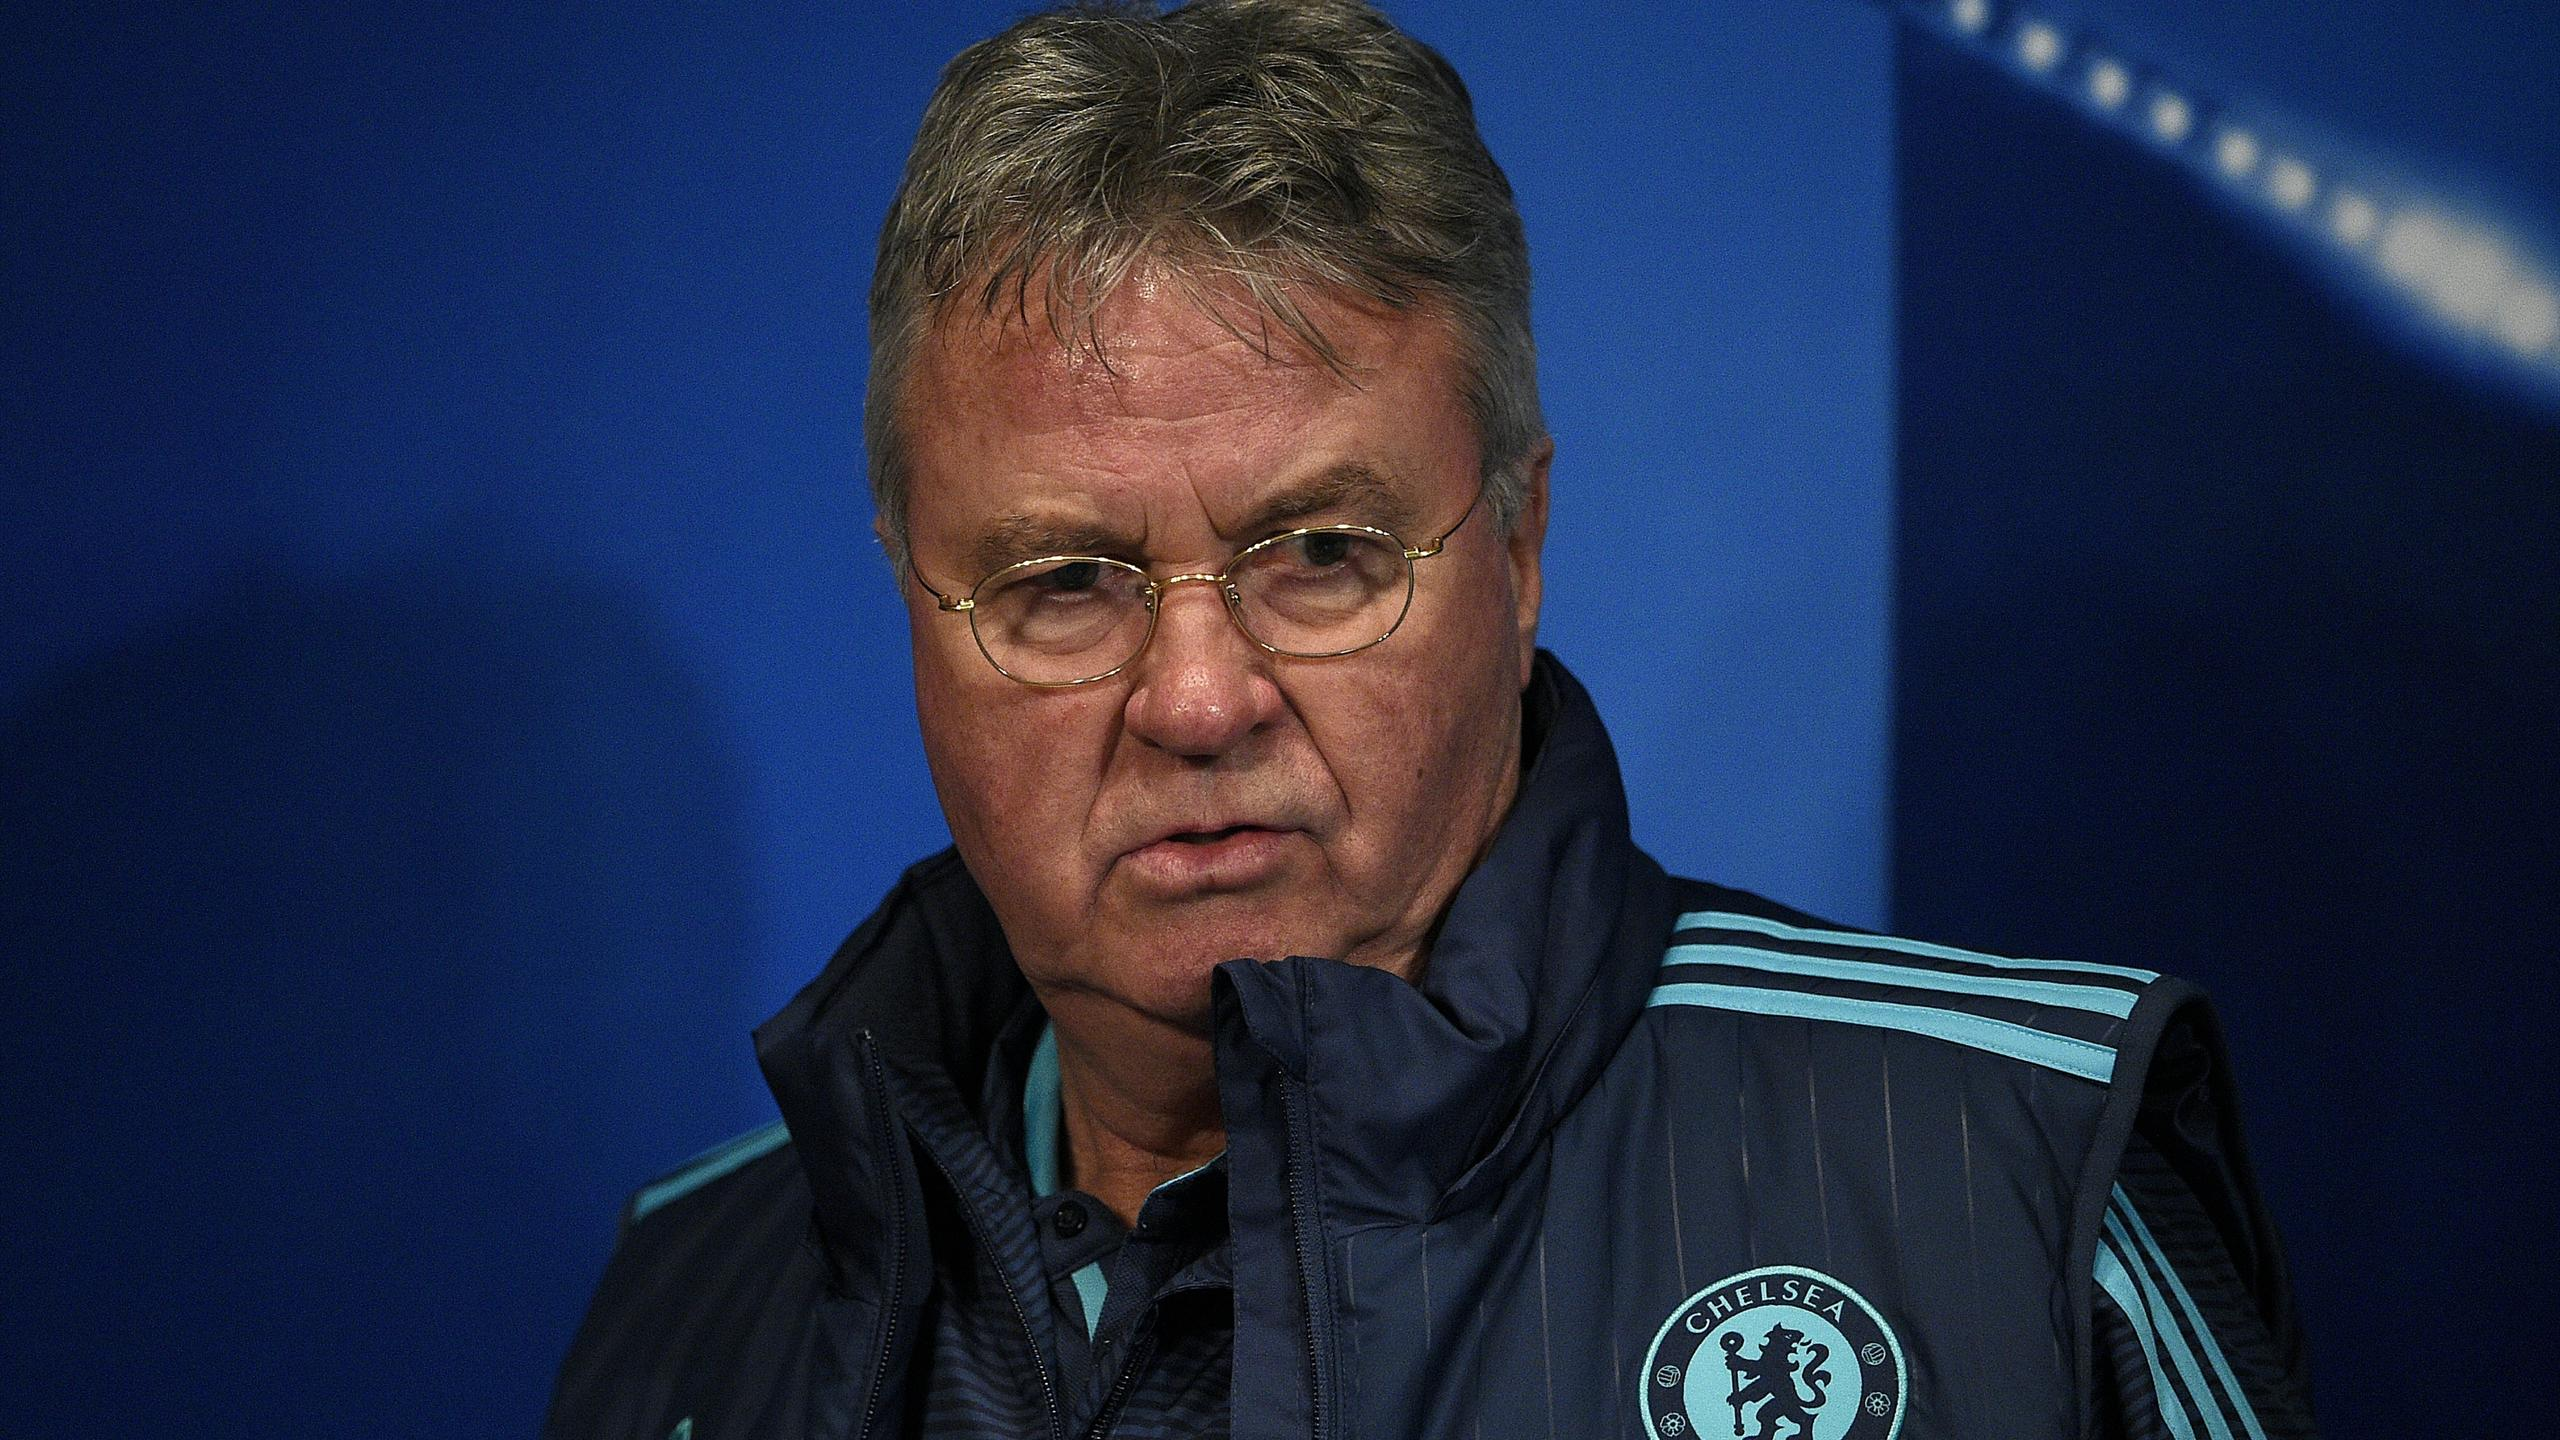 Chelsea's football club Dutch manager Guus Hiddink arrives for a press conference on the eve of the UEFA Champions League football match between Chelsea and Paris Saint Germain, on February 15, 2016 at the Parc des Princes stadium in Paris